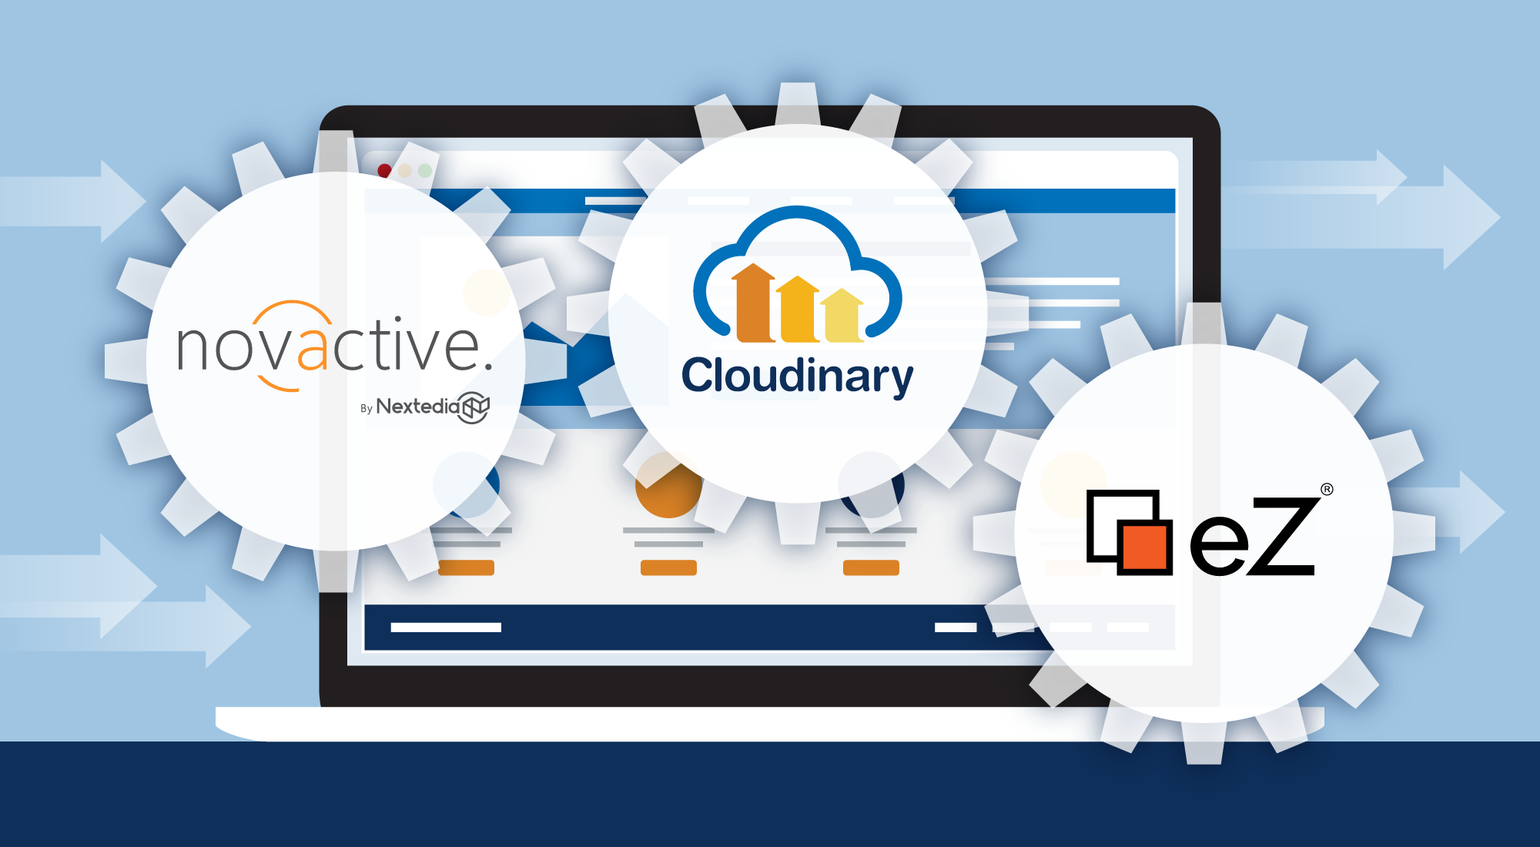 Dynamic image manipulation and optimization ez-er with the Novactive eZ Platform Cloudinary connector